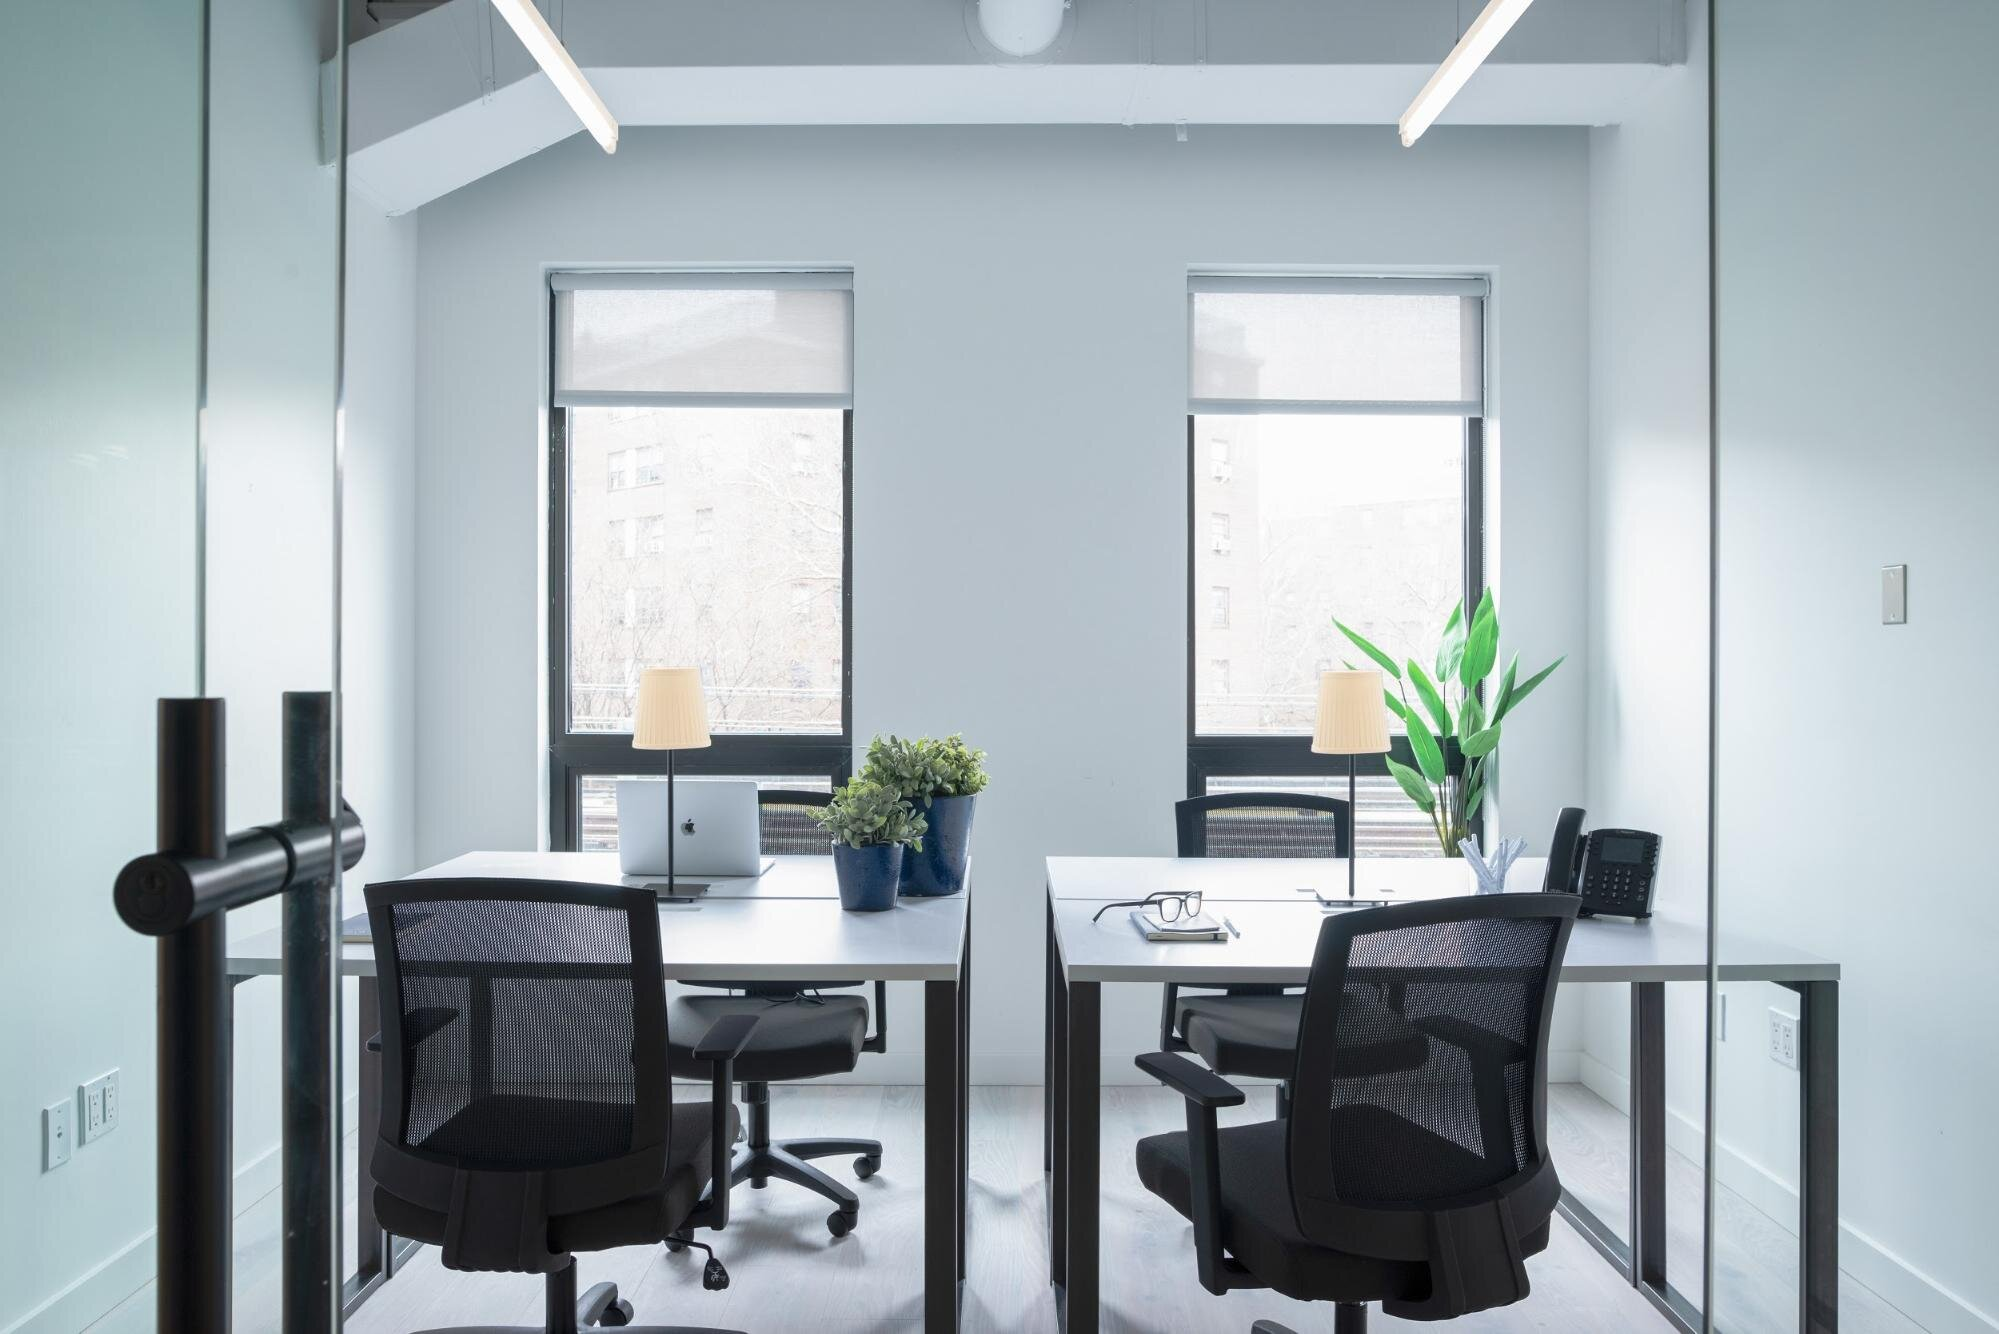 Office space with lots of natural lighting